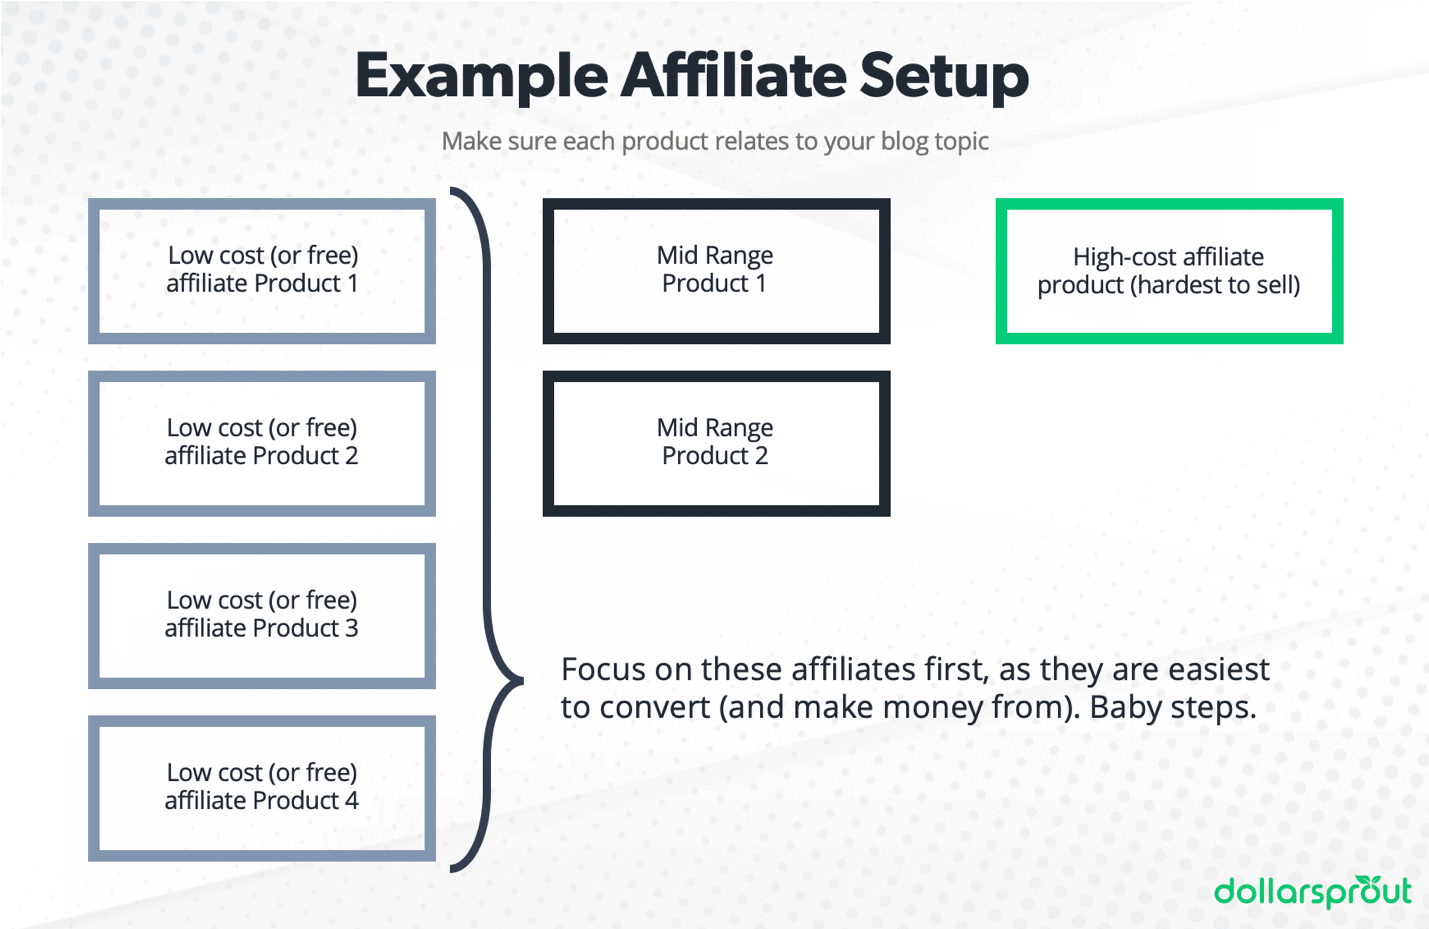 Example affiliate marketing setup for new bloggers that want to make money from their blog